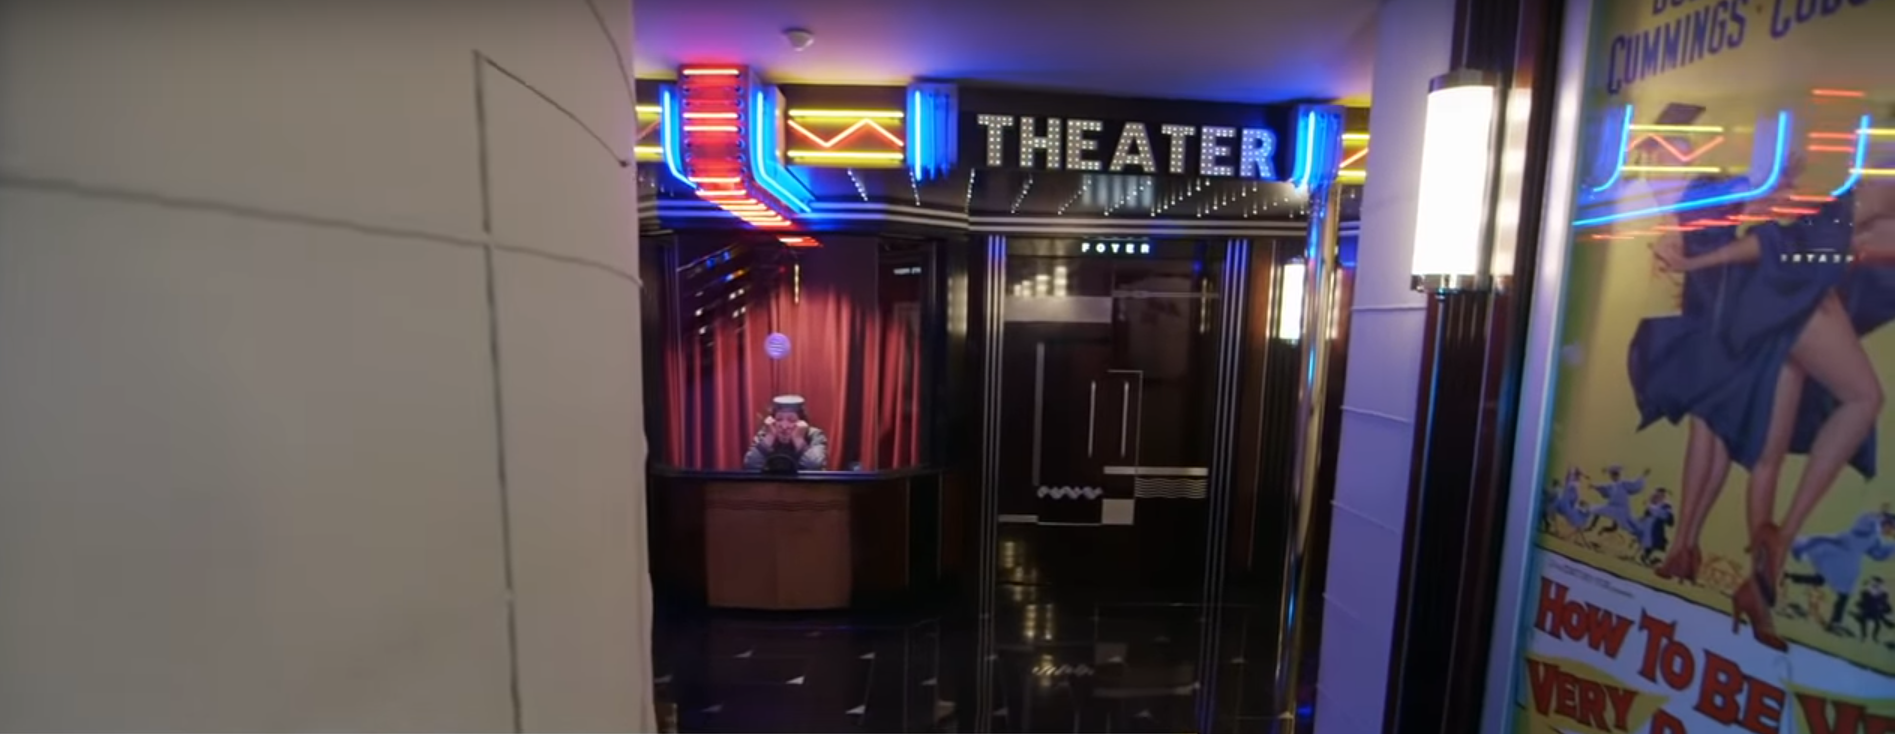 This home theater is over 3,000 square feet, making it one of the largest in the world.